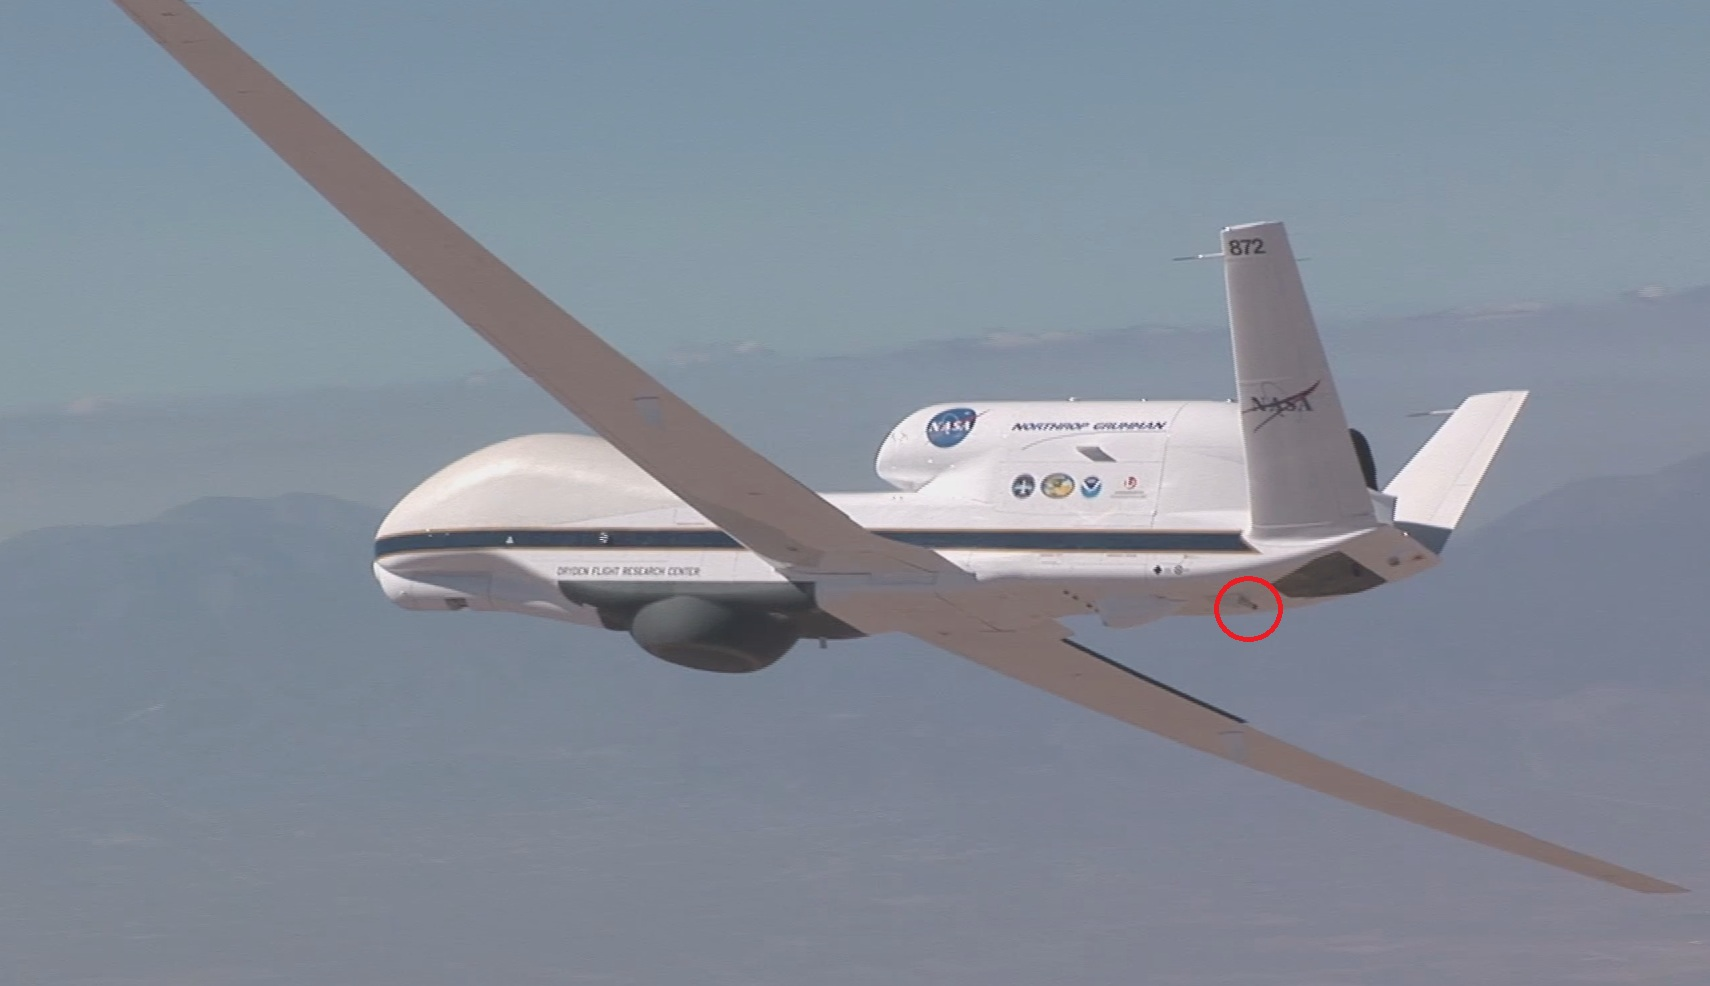 NASA Global Hawk Model - Pics about space